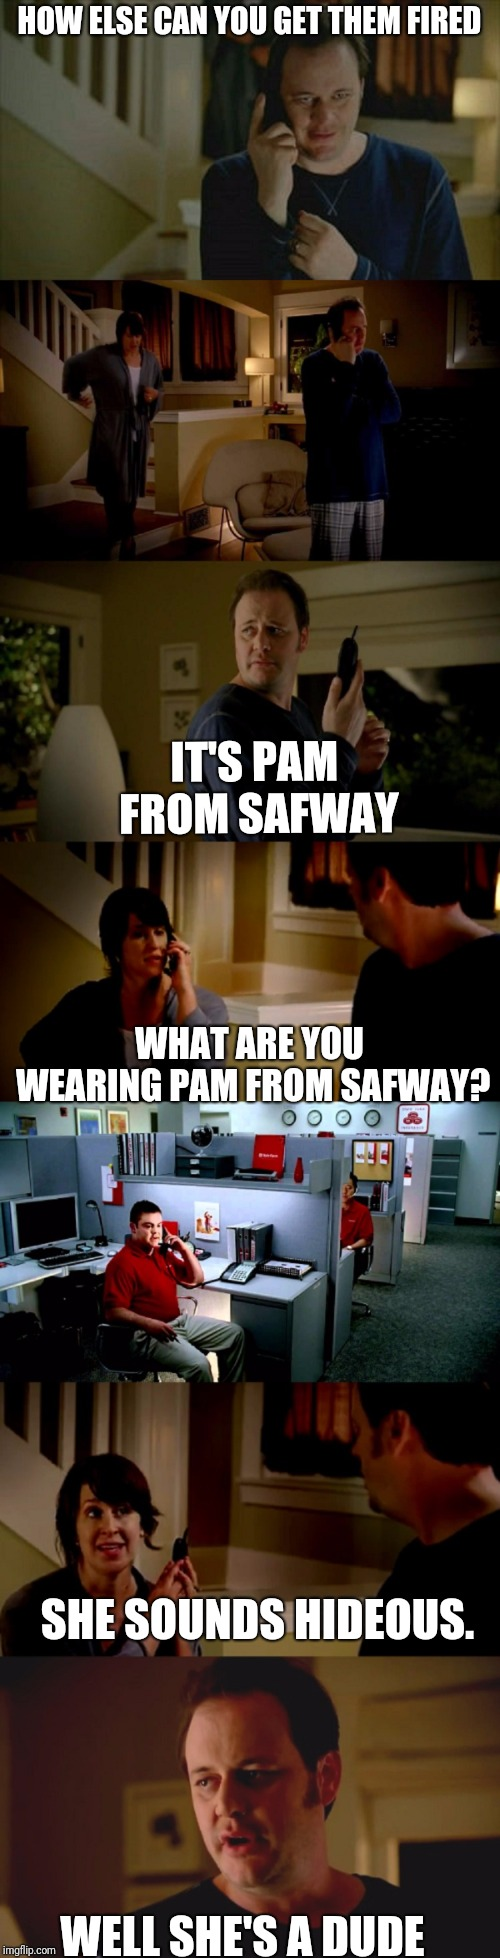 Jake From State Farm | HOW ELSE CAN YOU GET THEM FIRED WELL SHE'S A DUDE IT'S PAM FROM SAFWAY WHAT ARE YOU WEARING PAM FROM SAFWAY? SHE SOUNDS HIDEOUS. | image tagged in jake from state farm | made w/ Imgflip meme maker